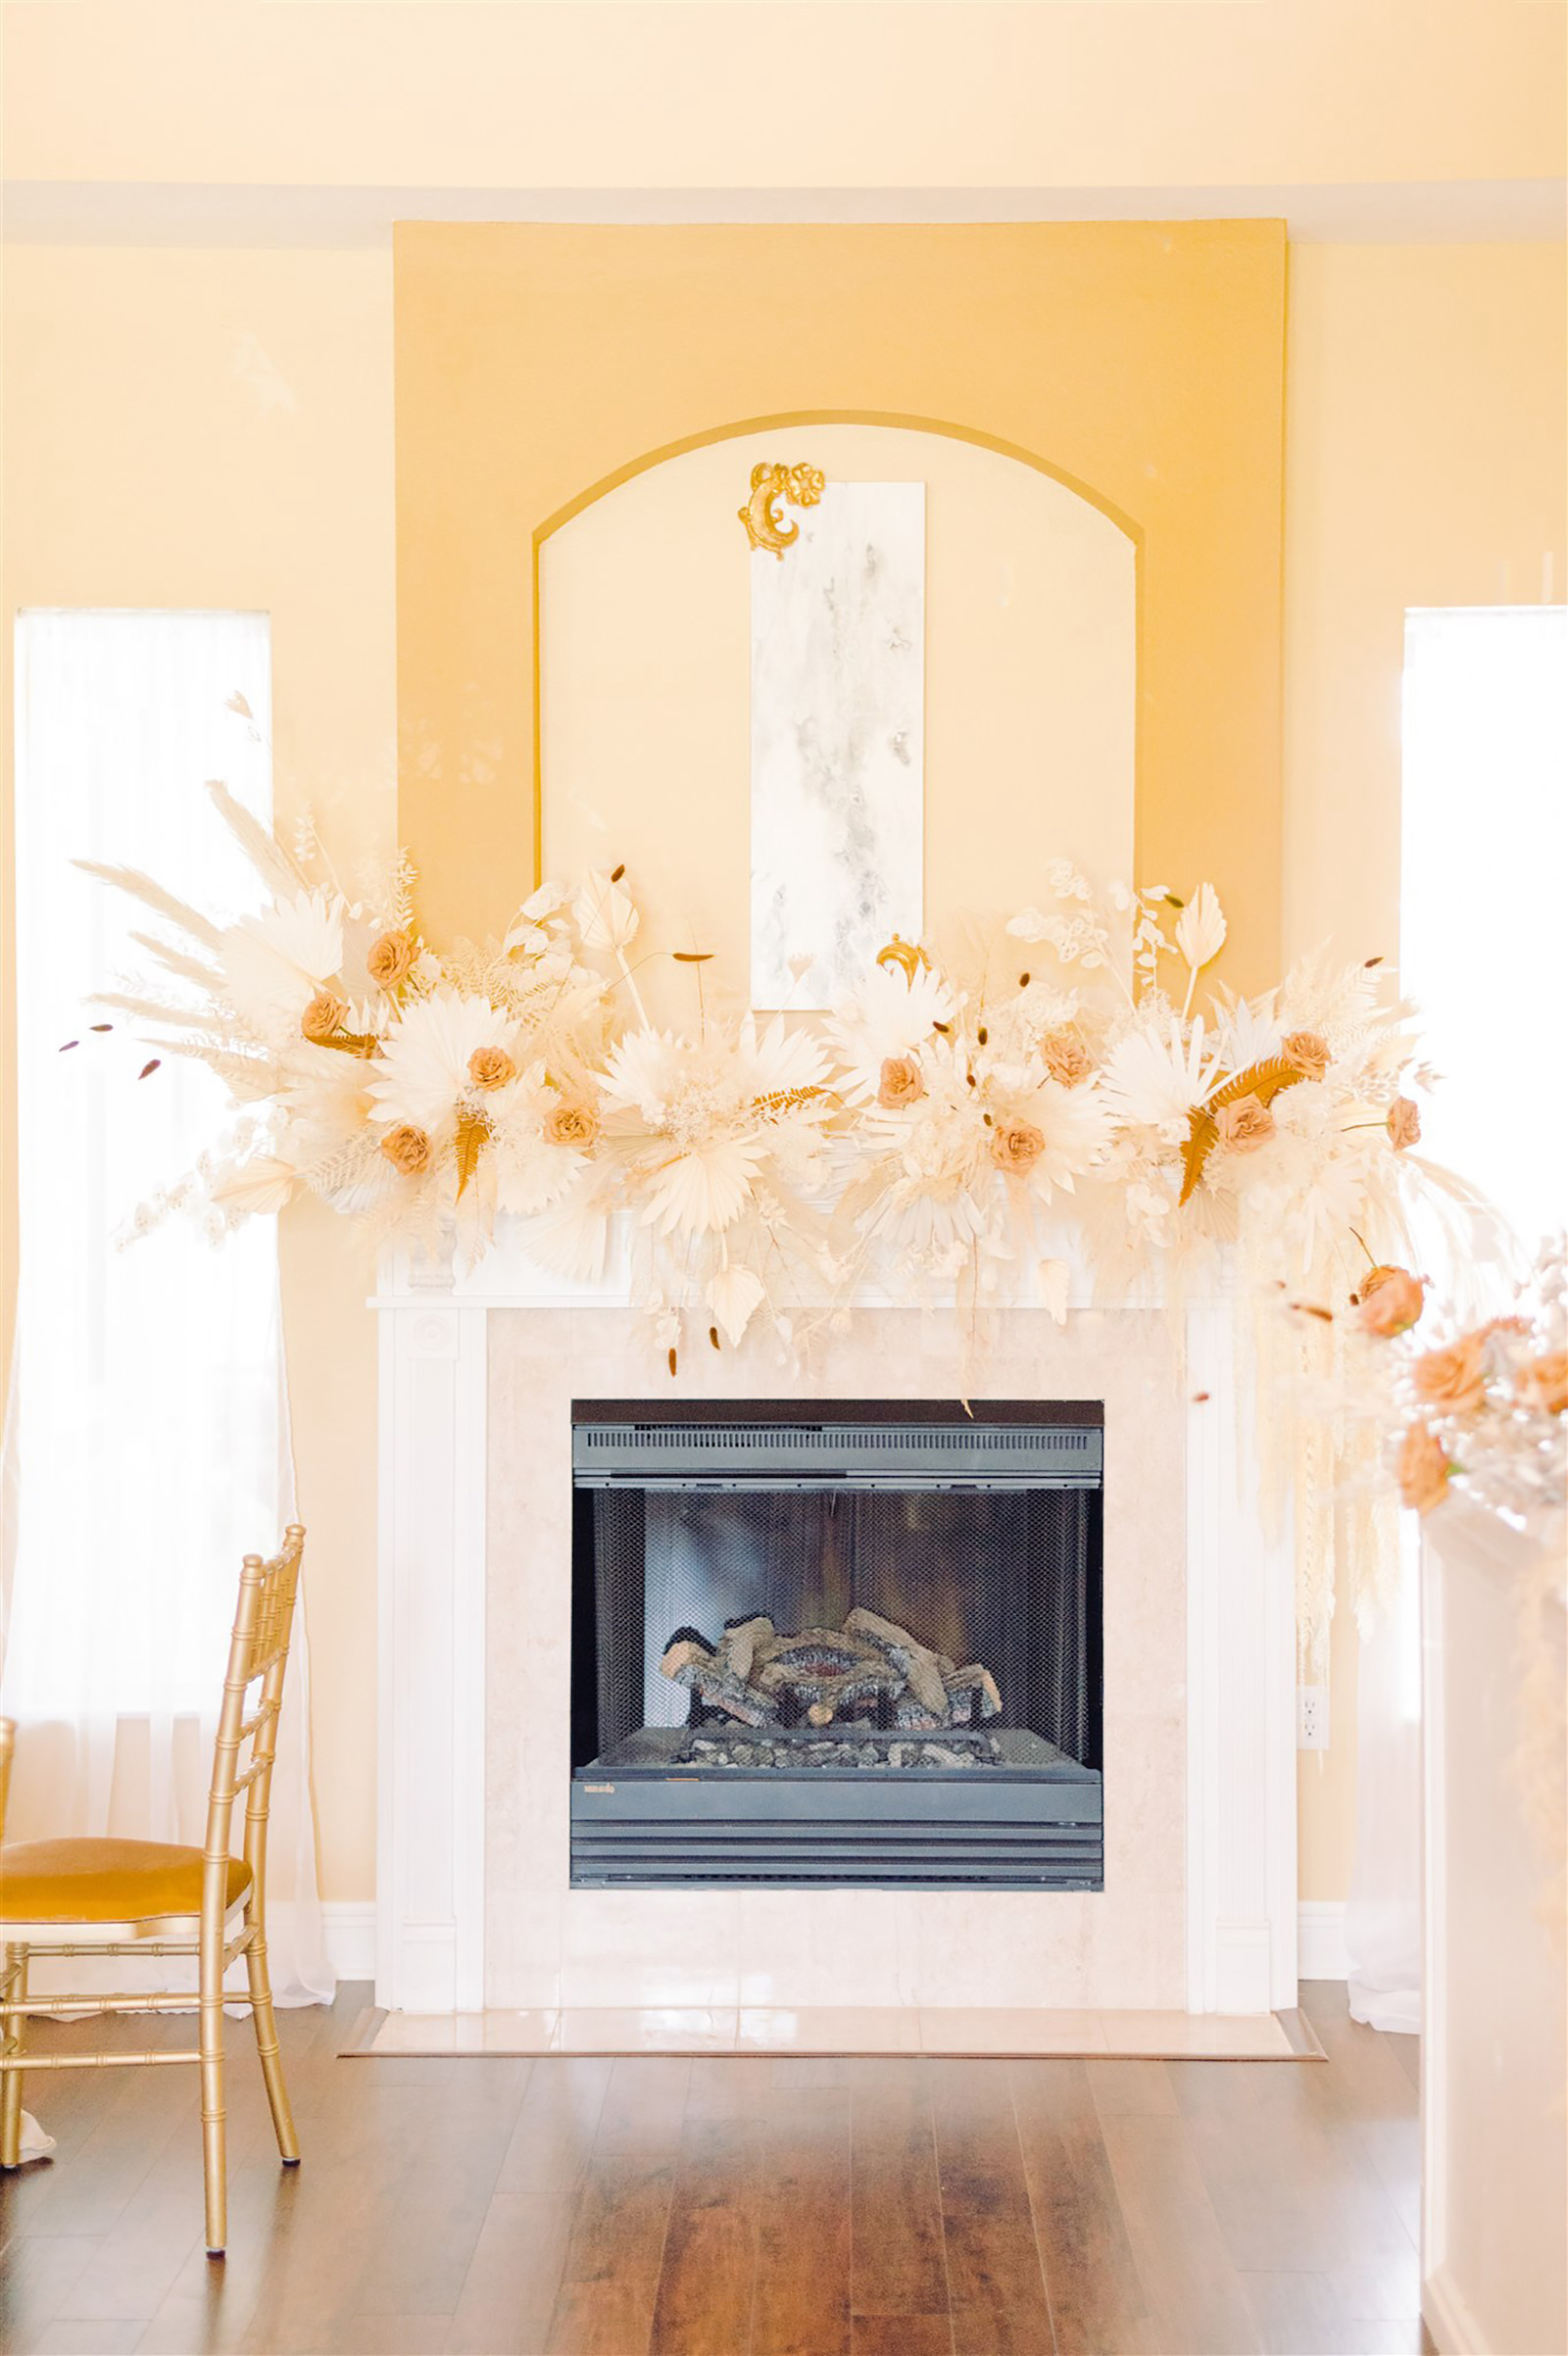 Trendy and Modern Boho Wedding Decor, White and Beige Preserved Florals and Foliage Bouquet on Fireplace Mantel | Tampa Bay Wedding Planner, Florist and Designer John Campbell Weddings